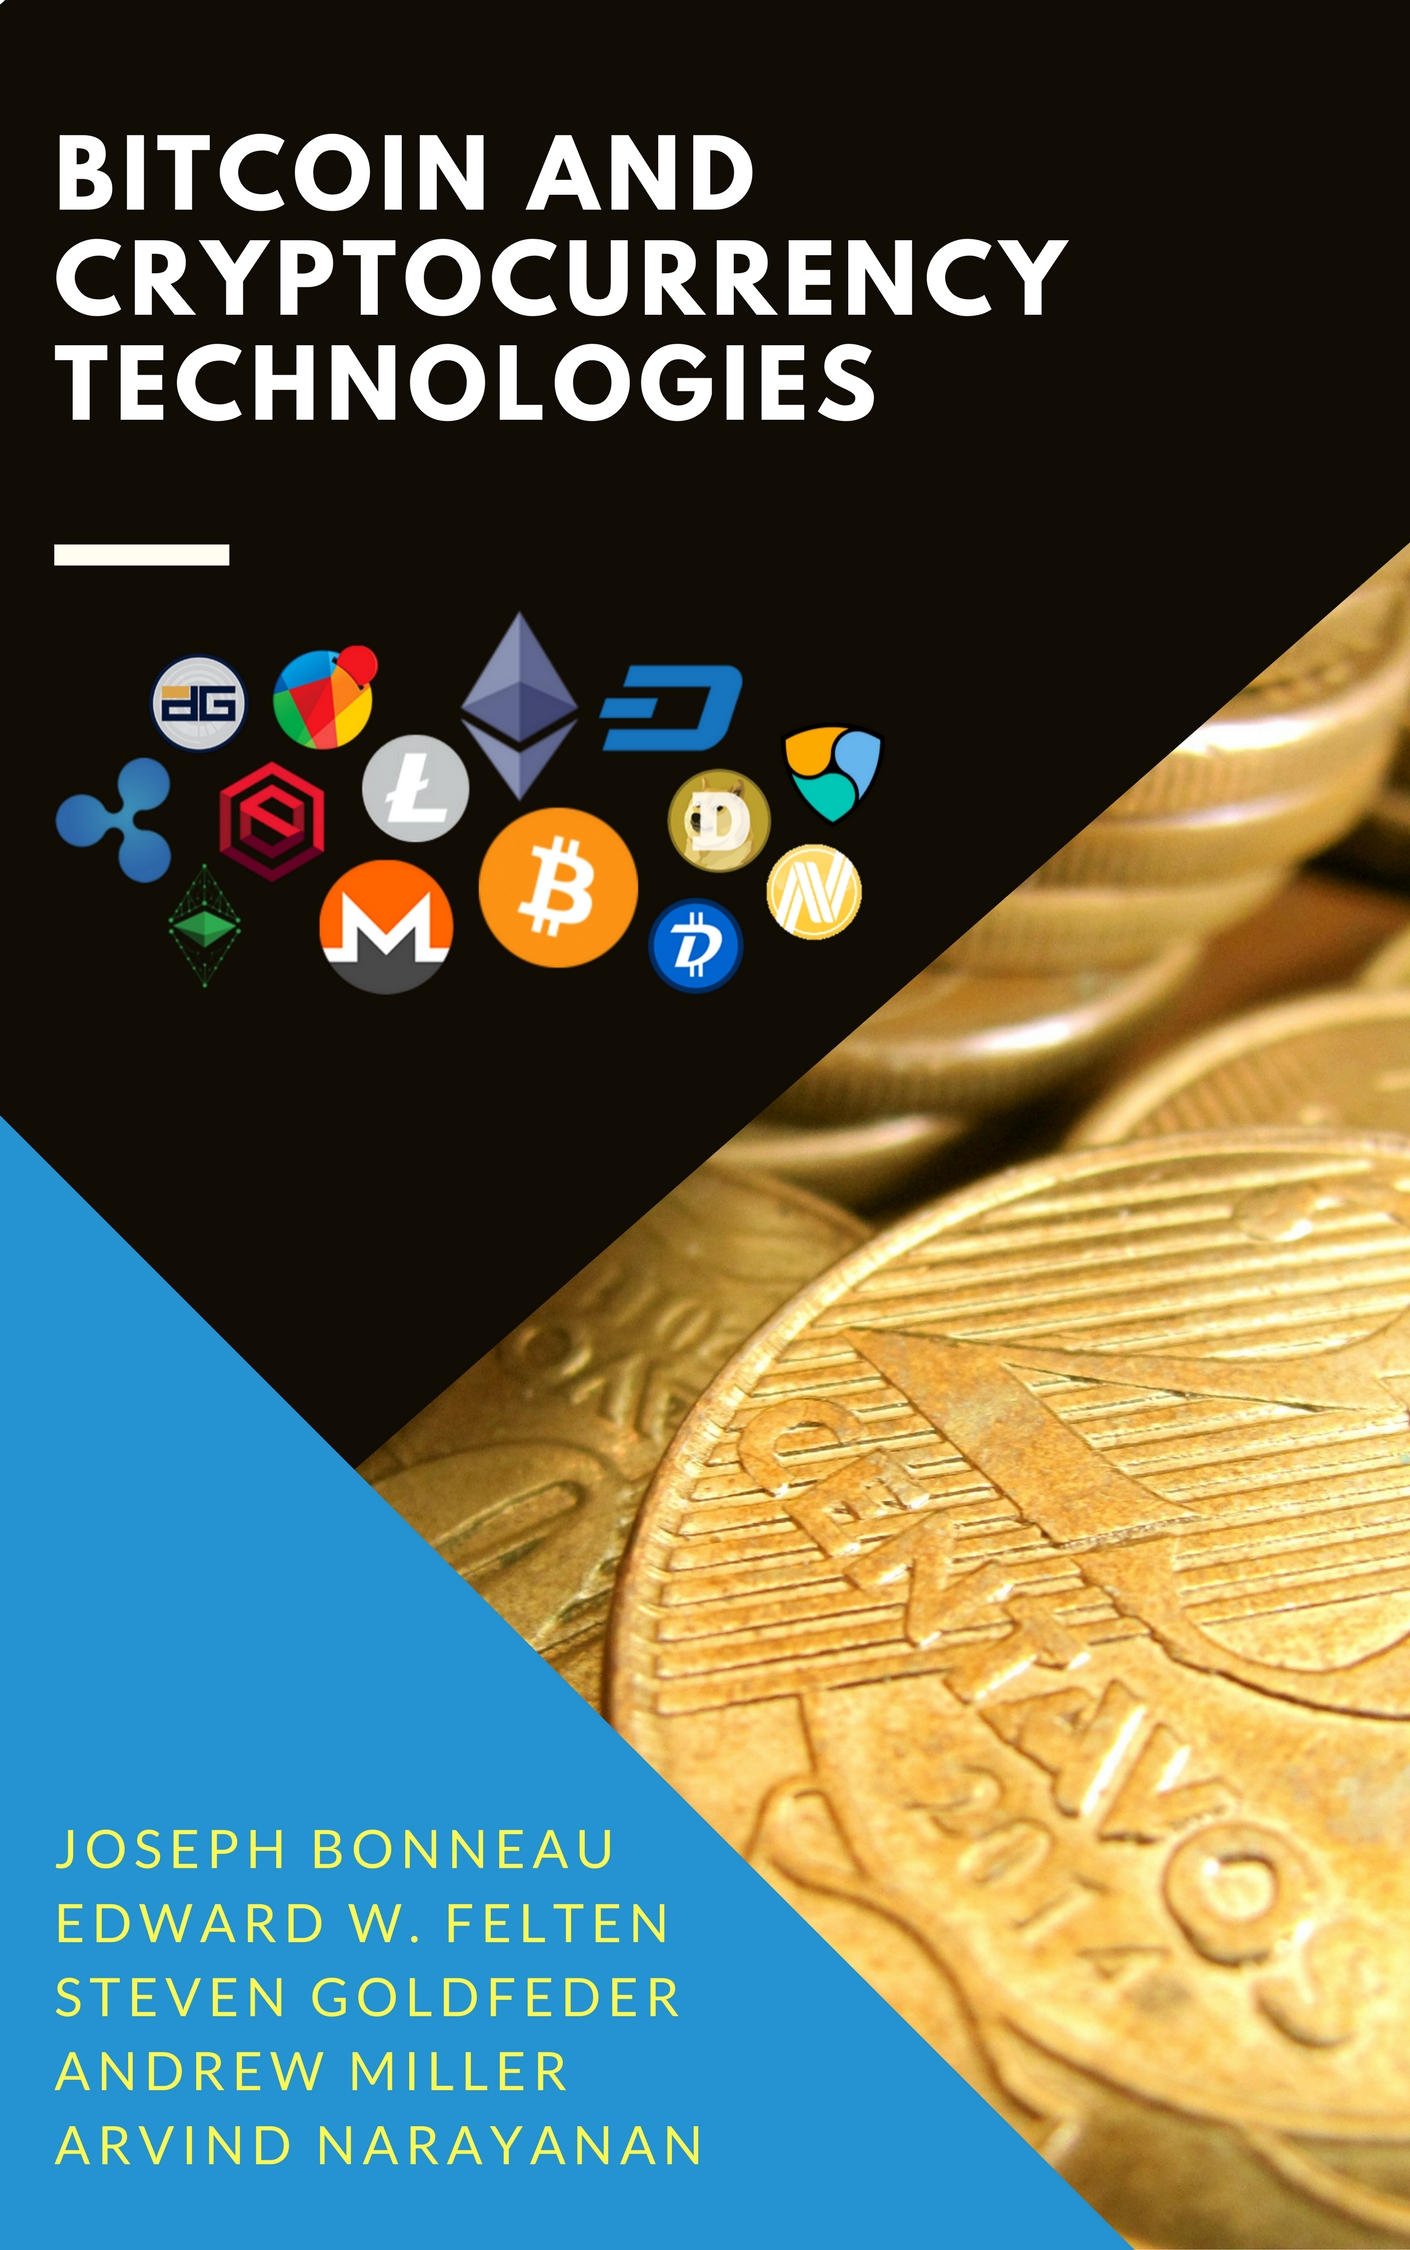 Books about cryptocurrency arvind narayanan pdf